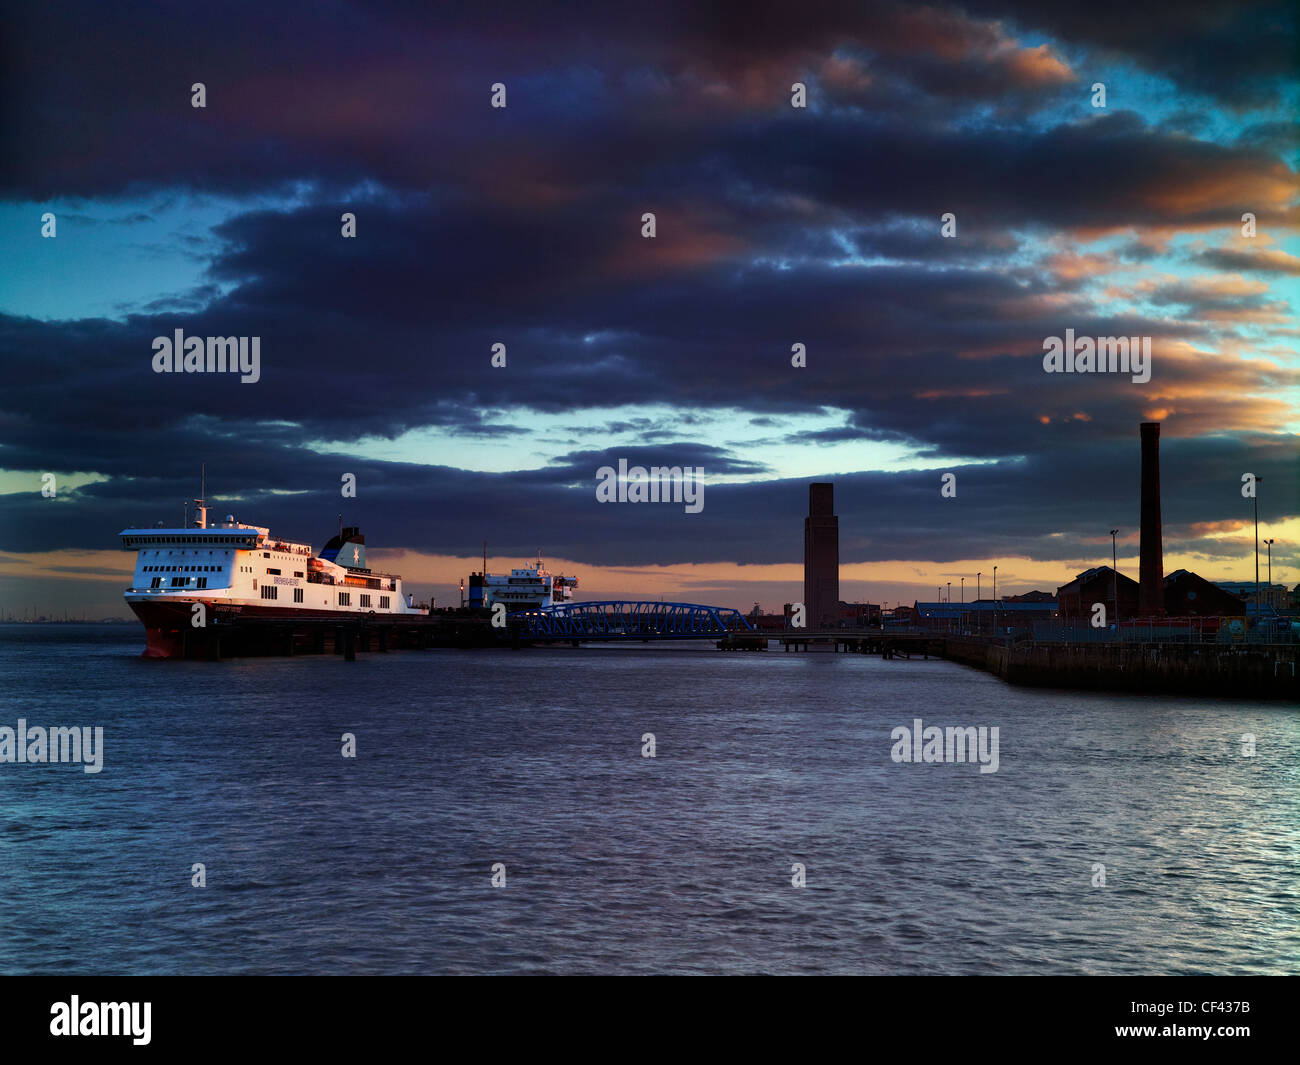 Twilight descends over the Twelve Quays ferry terminal on the River Mersey at Birkenhead. - Stock Image